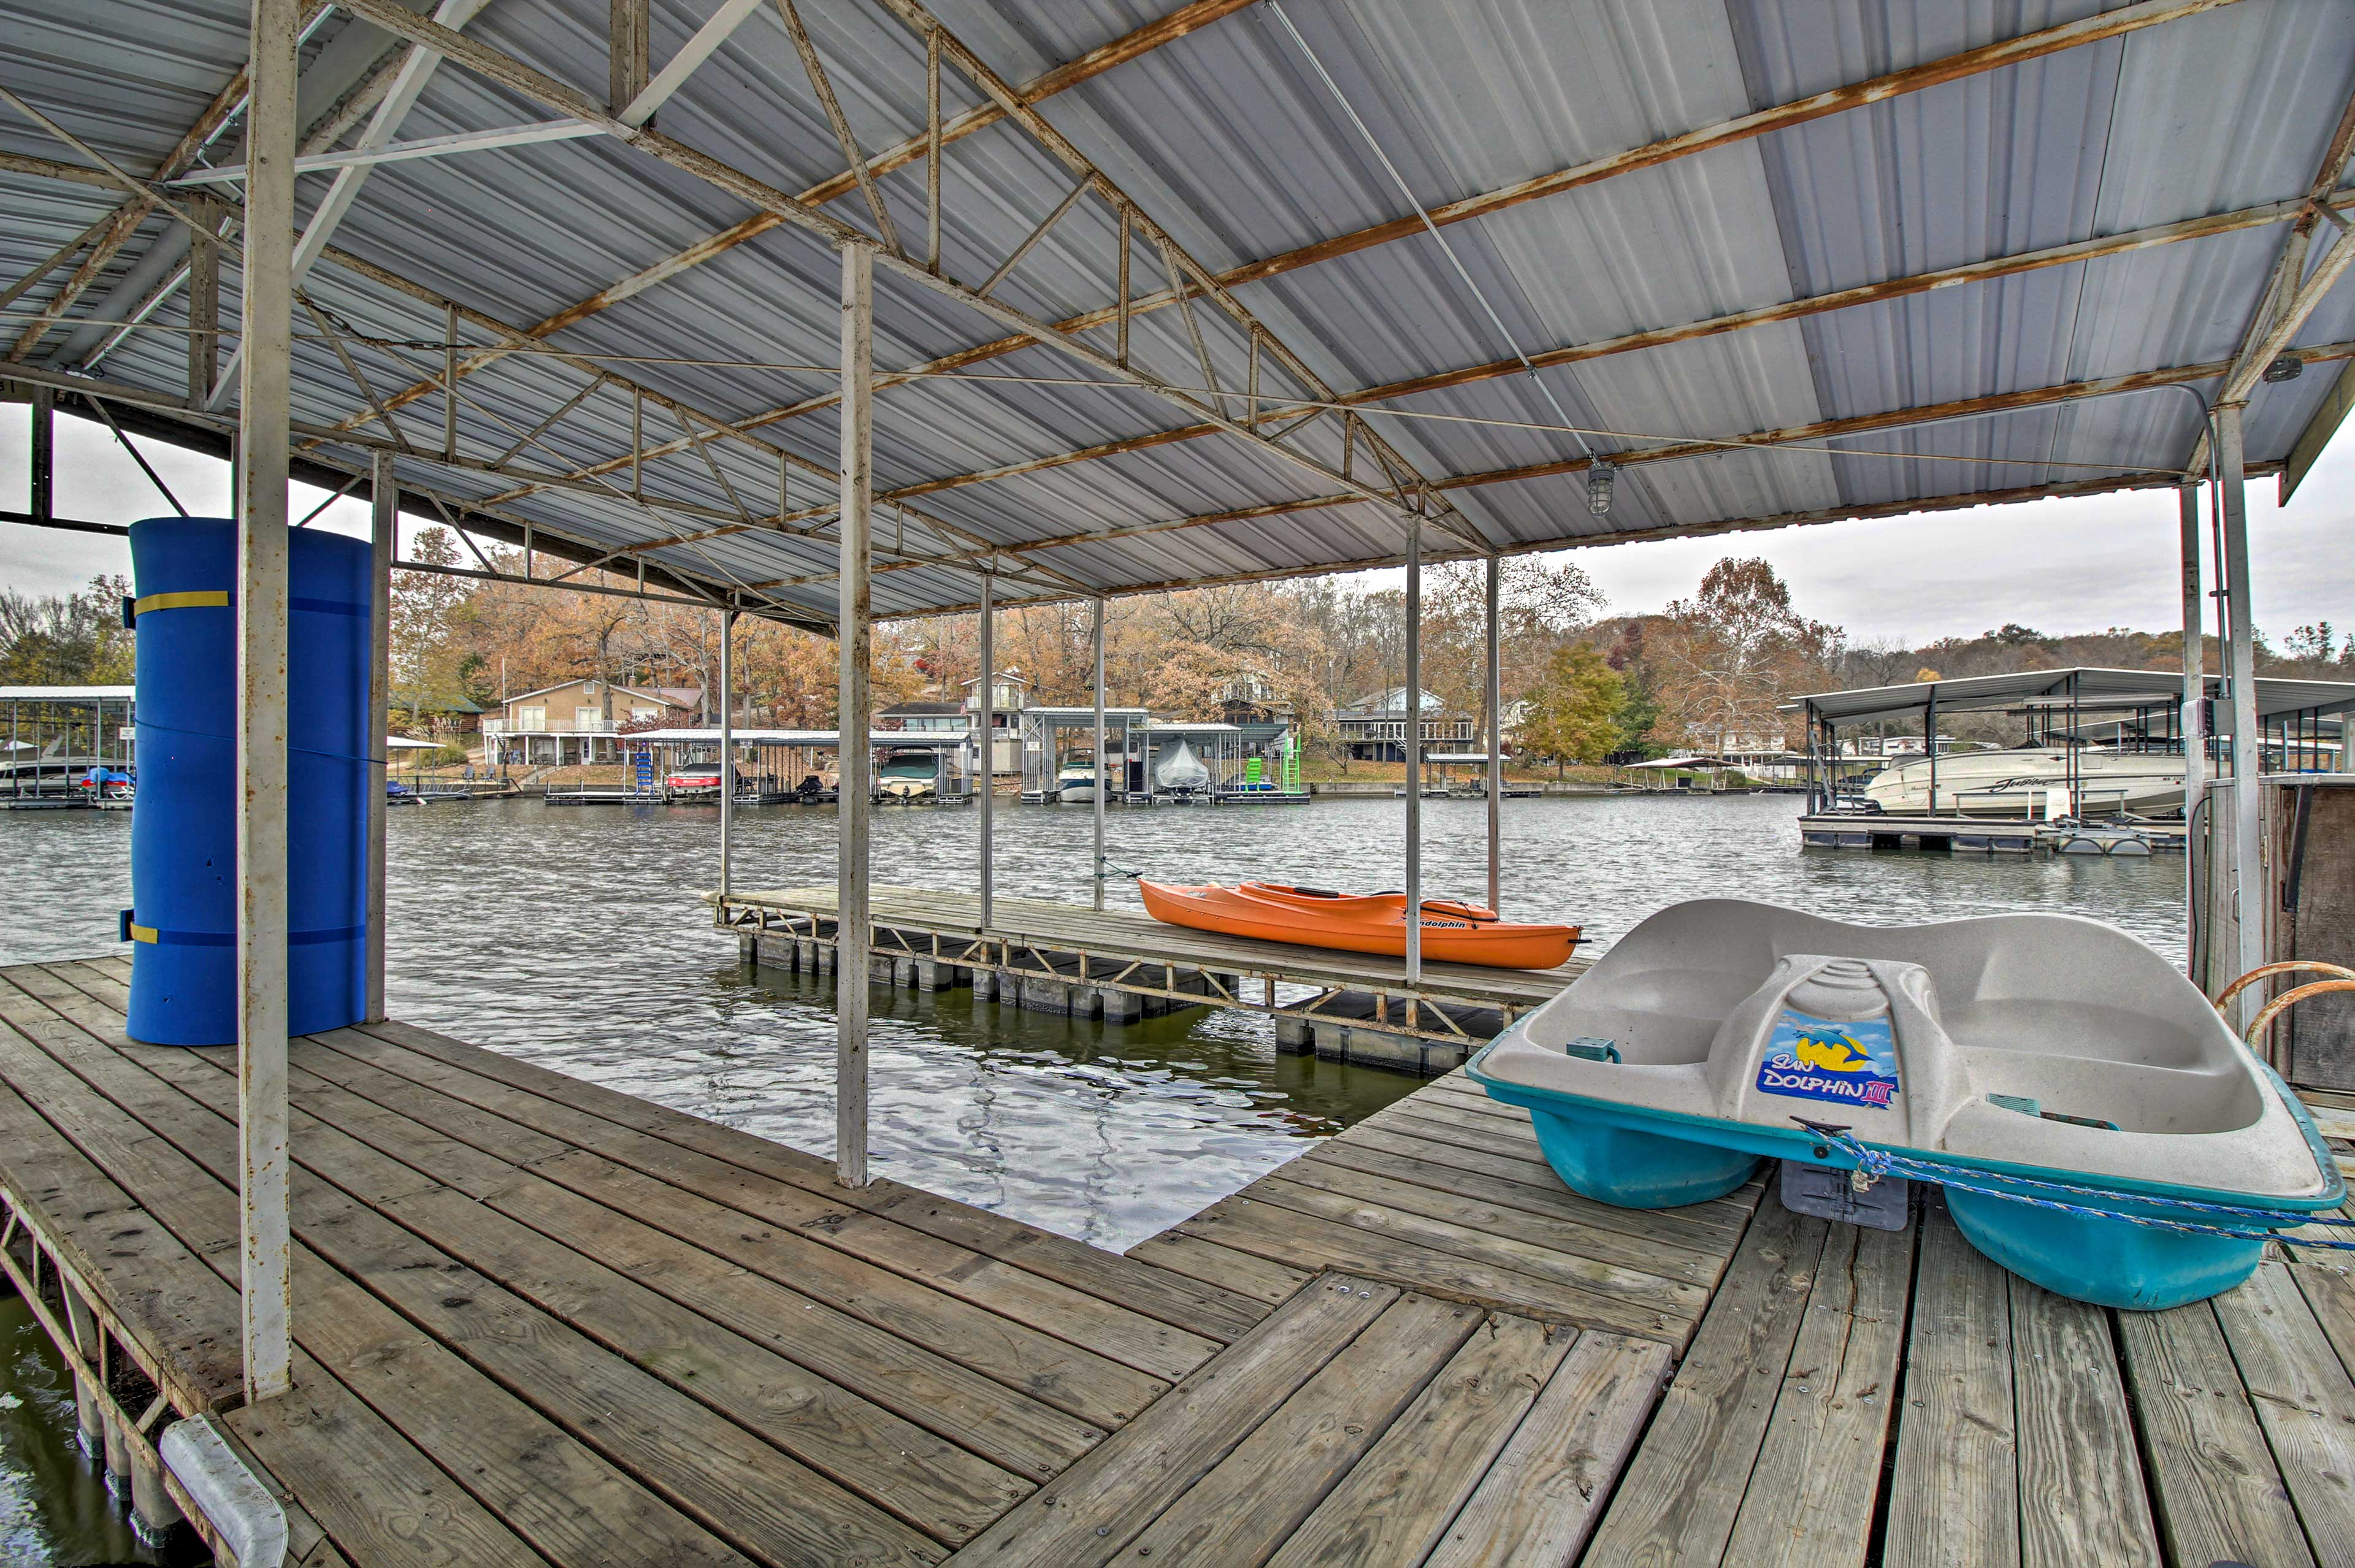 Take the paddle boat out on the water or dock your boat here.